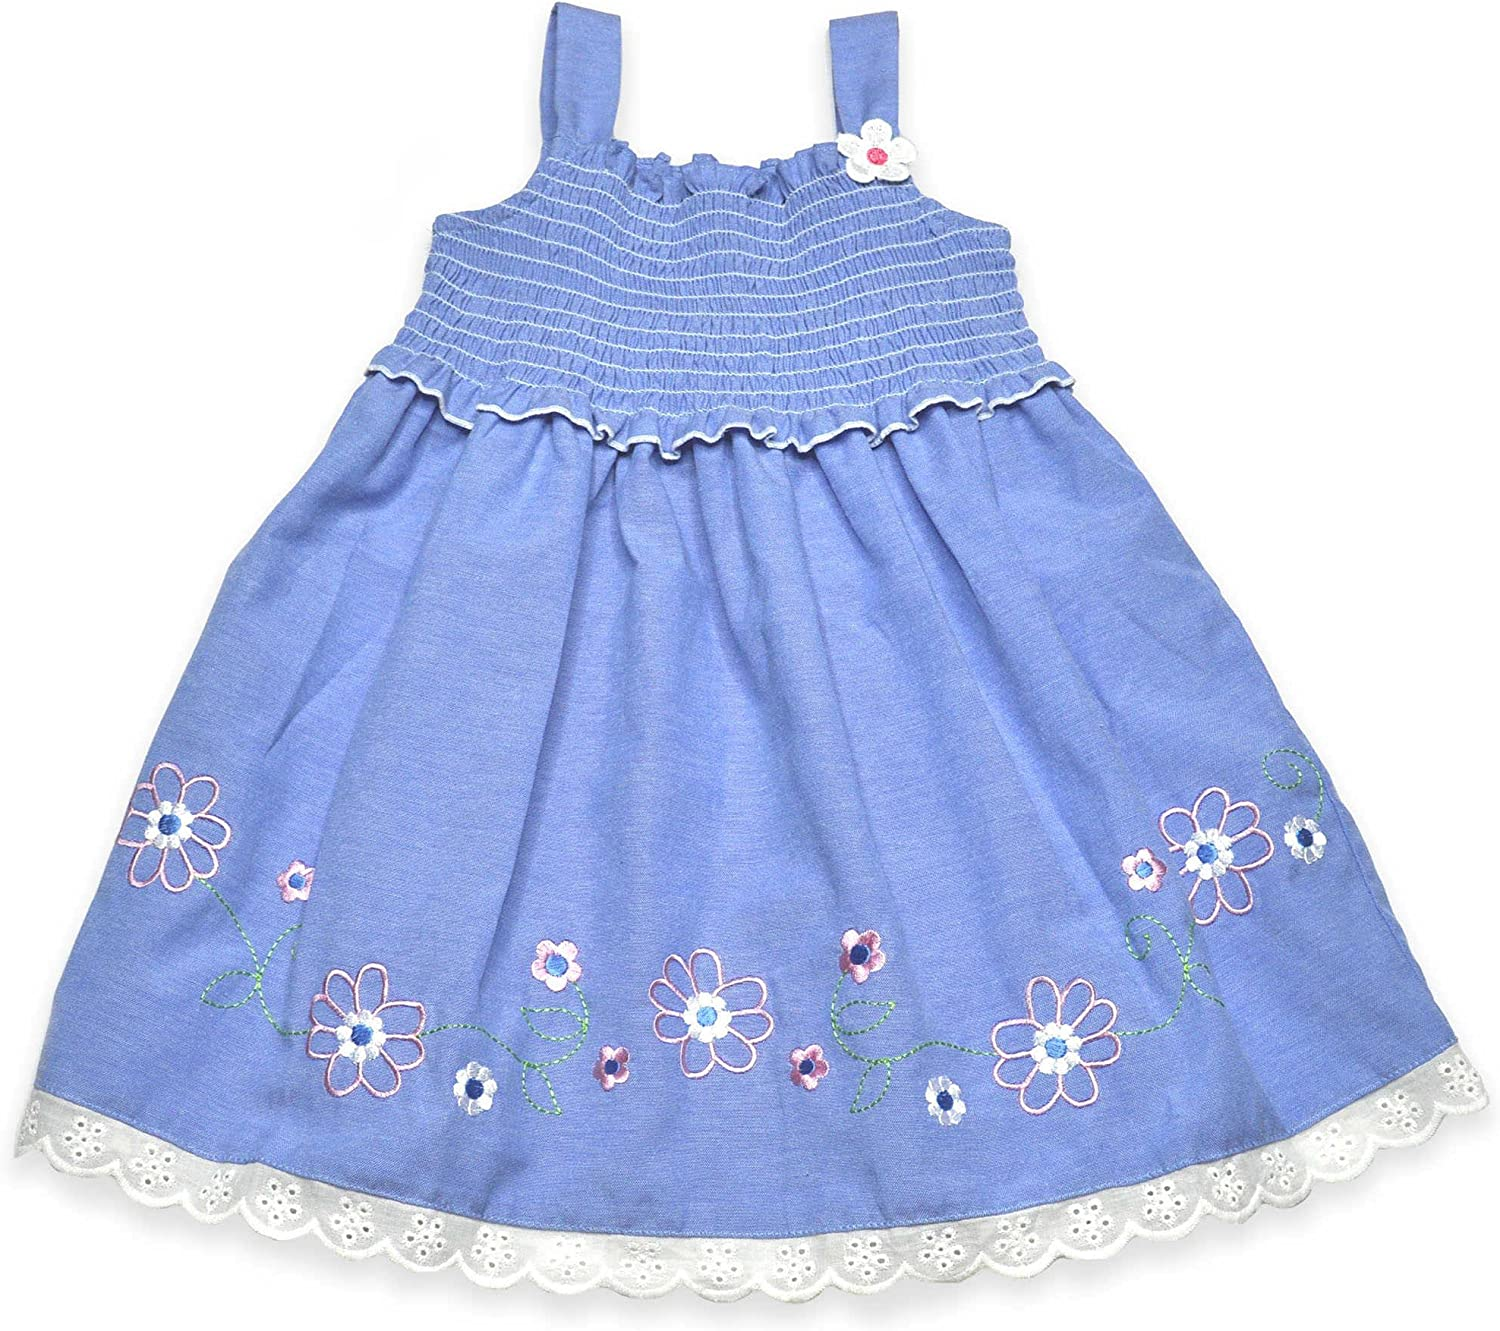 Samara Little Girls Chambray sundress